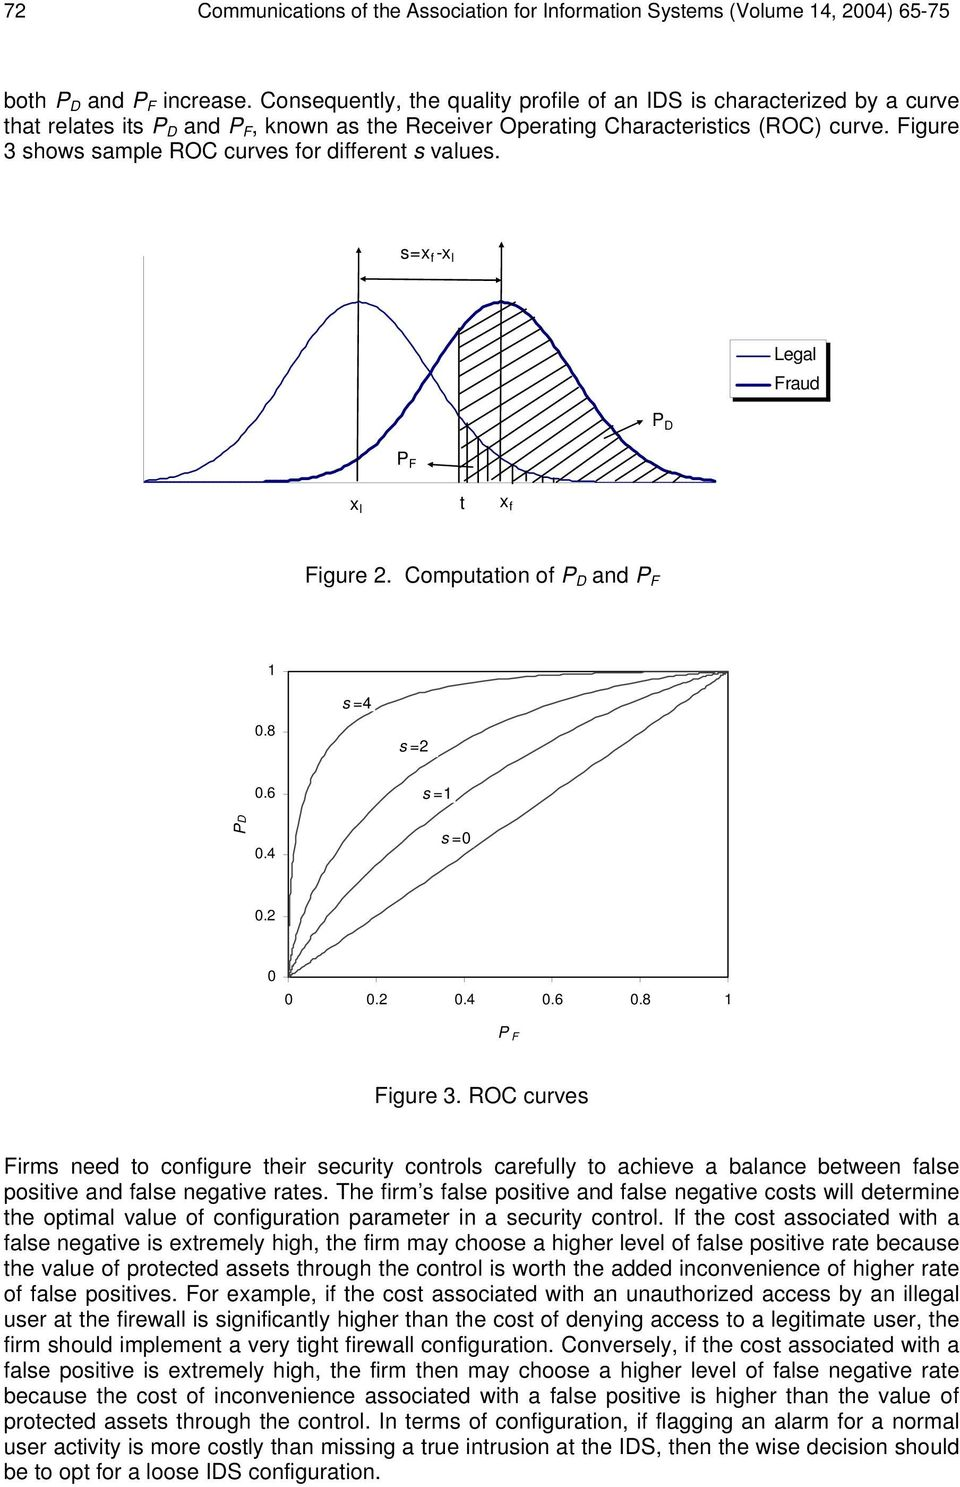 Figure 3 shows sample ROC curves for different s values. s=x f -x l Legal Fraud P D P F x l t x f Figure 2. Computation of P D and P F 1 0.8 s =4 s =2 0.6 s =1 PD 0.4 s =0 0.2 0 0 0.2 0.4 0.6 0.